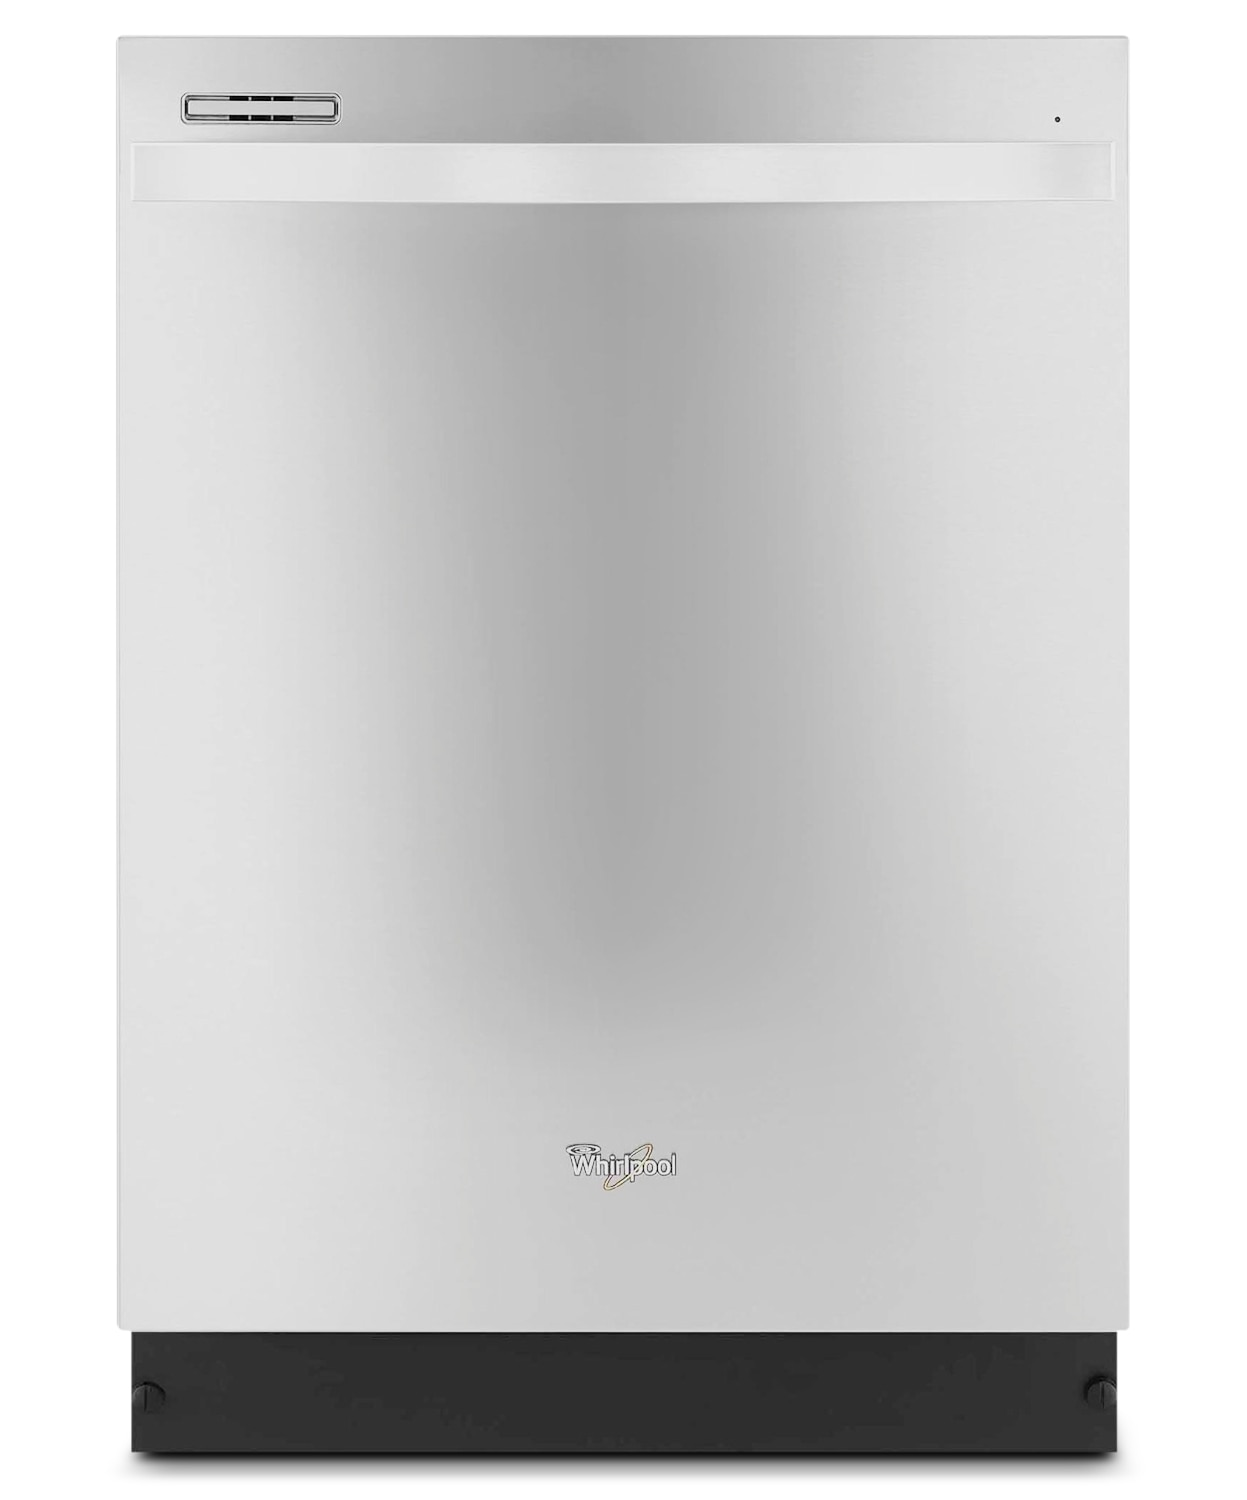 "Clean-Up - Whirlpool Stainless Steel 24"" Dishwasher - WDT720PADM"